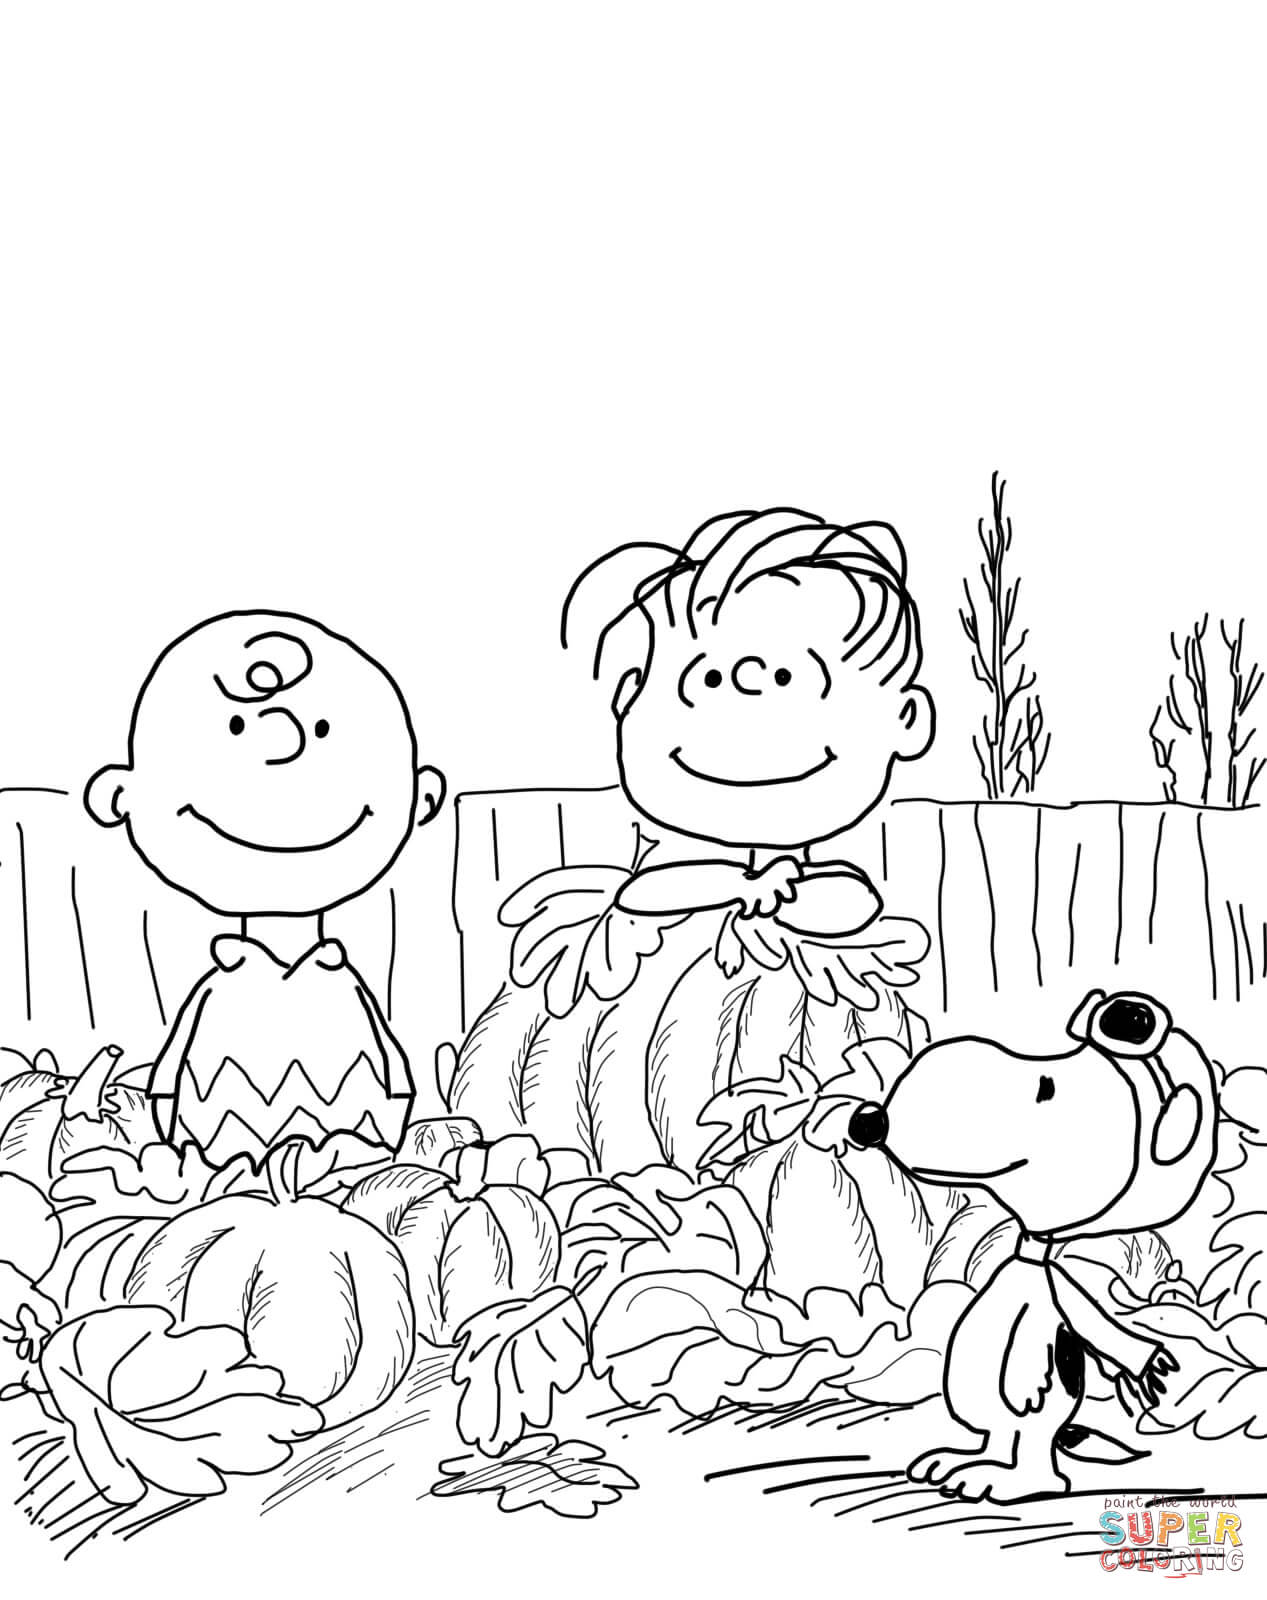 Great Pumpkin Charlie Brown Coloring Page